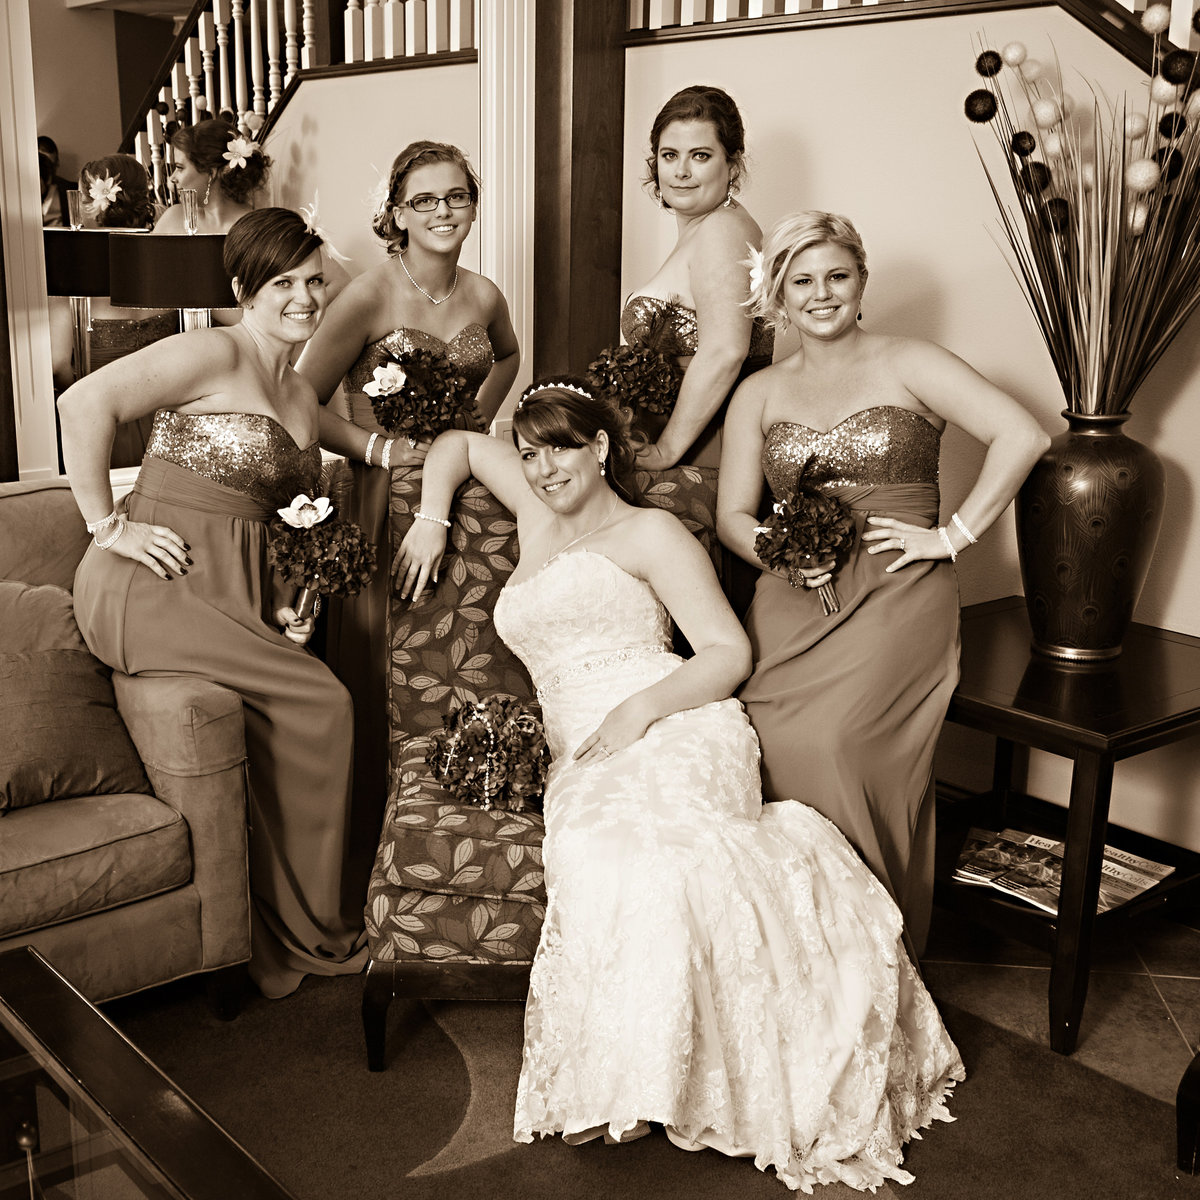 093_Bridal_Party_125